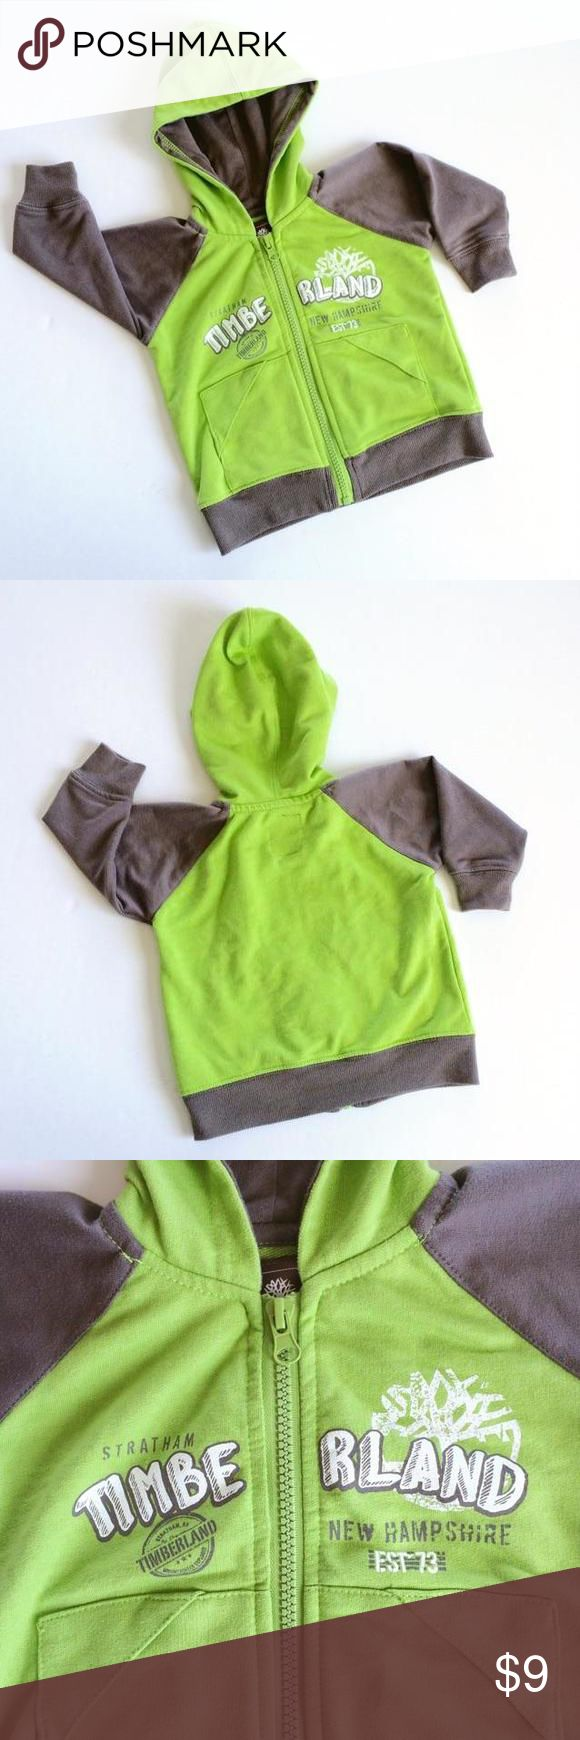 Timberland Hoodie Lime green and gray zippered hoodie. Lightweight and soft. Timberland Shirts & Tops Sweatshirts & Hoodies